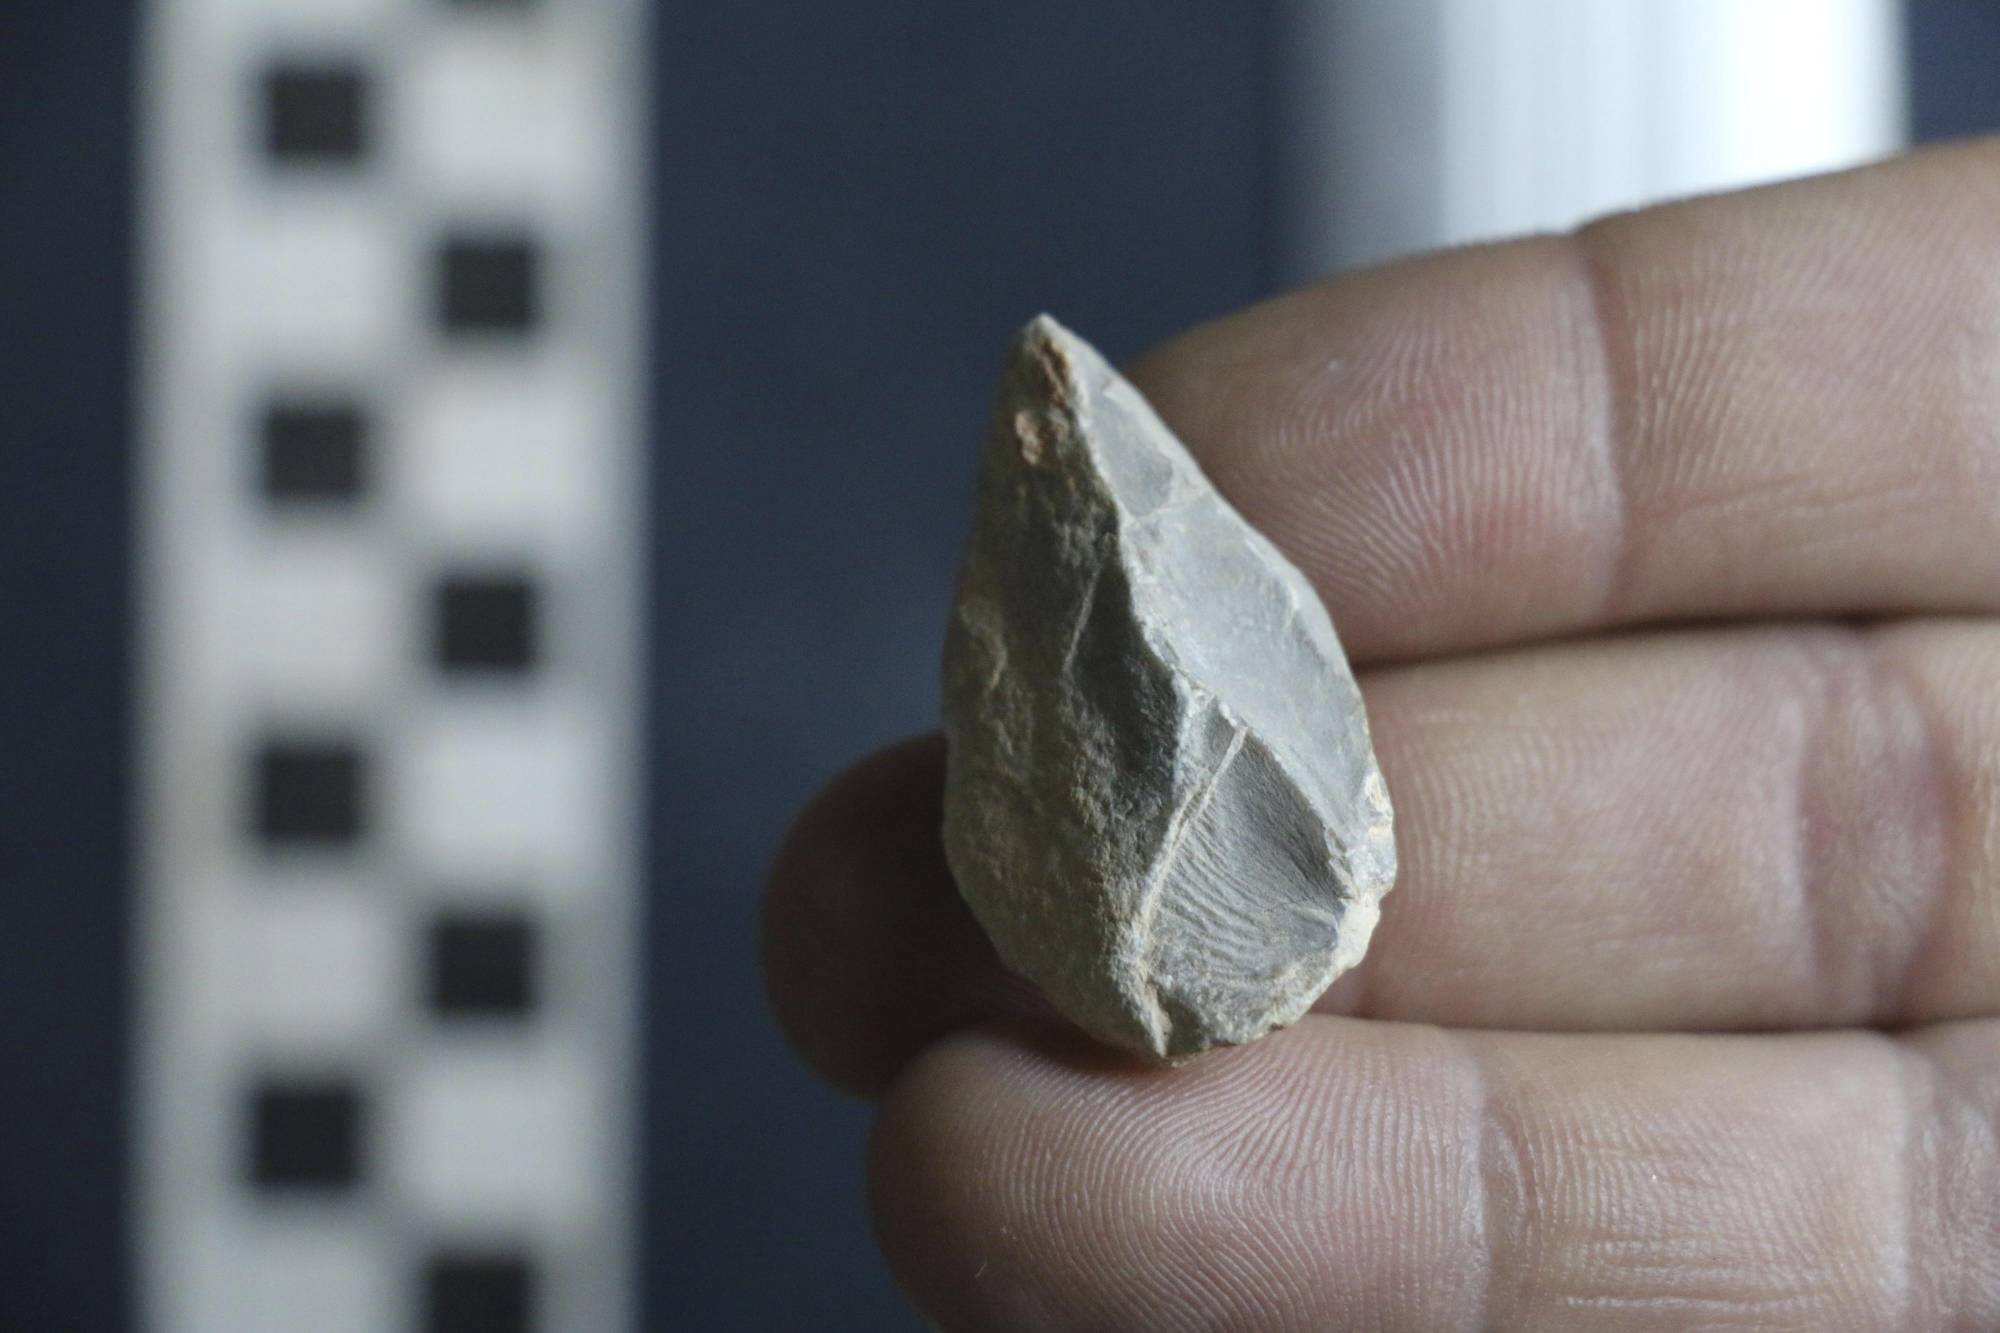 This undated photo provided by Ciprian Ardelean in July 2020 shows a stone tool found below the Last Glacial Maximum layer from a cave in Zacatecas in central Mexico. | CIPRIAN ARDELEAN VIA AP